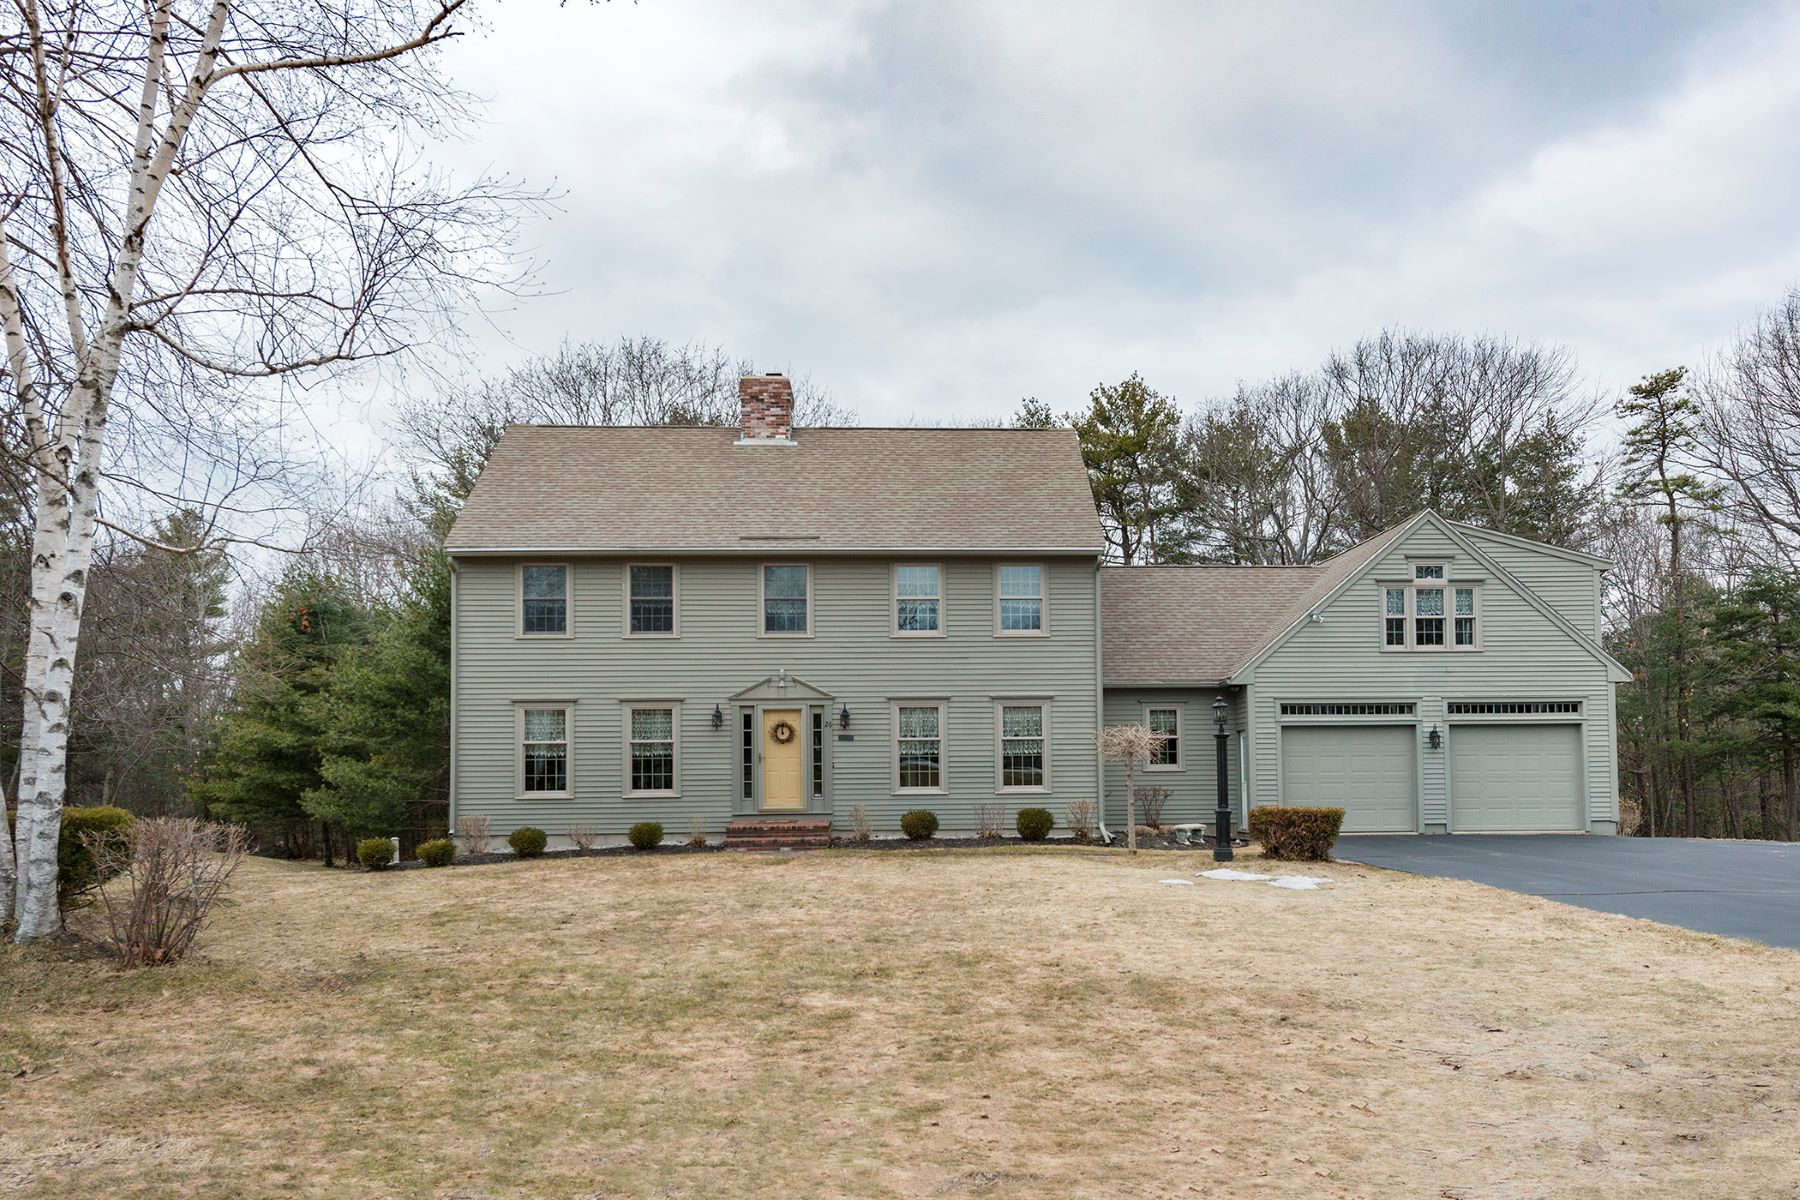 Single Family Home for Sale at 26 Pine Ledge Drive 26 Pine Ledge Drive Scarborough, Maine 04074 United States